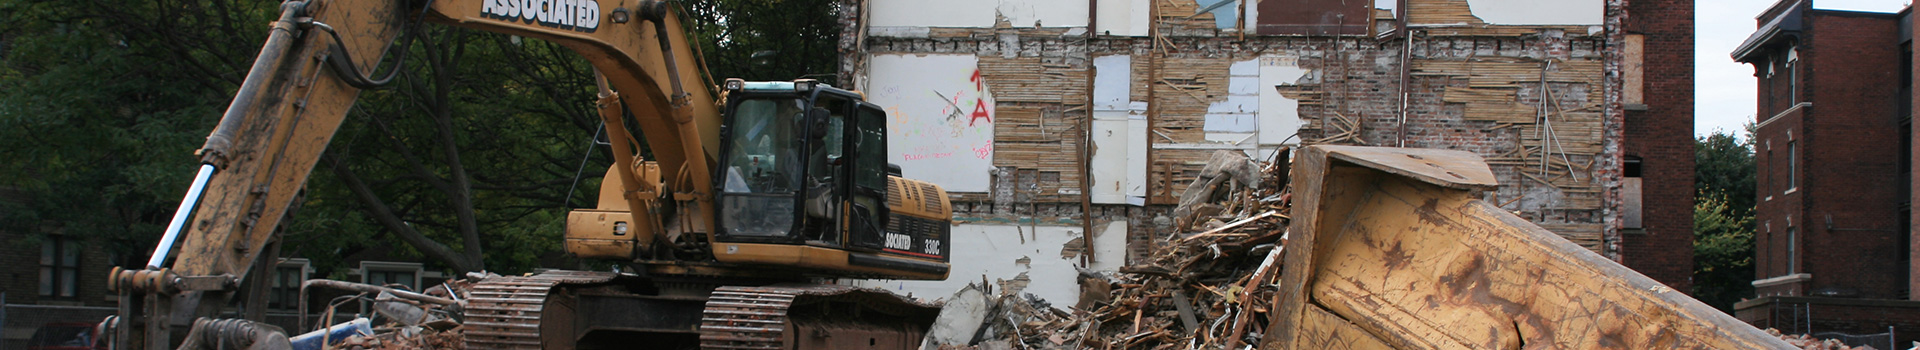 Large & Small Scale Demolition Services